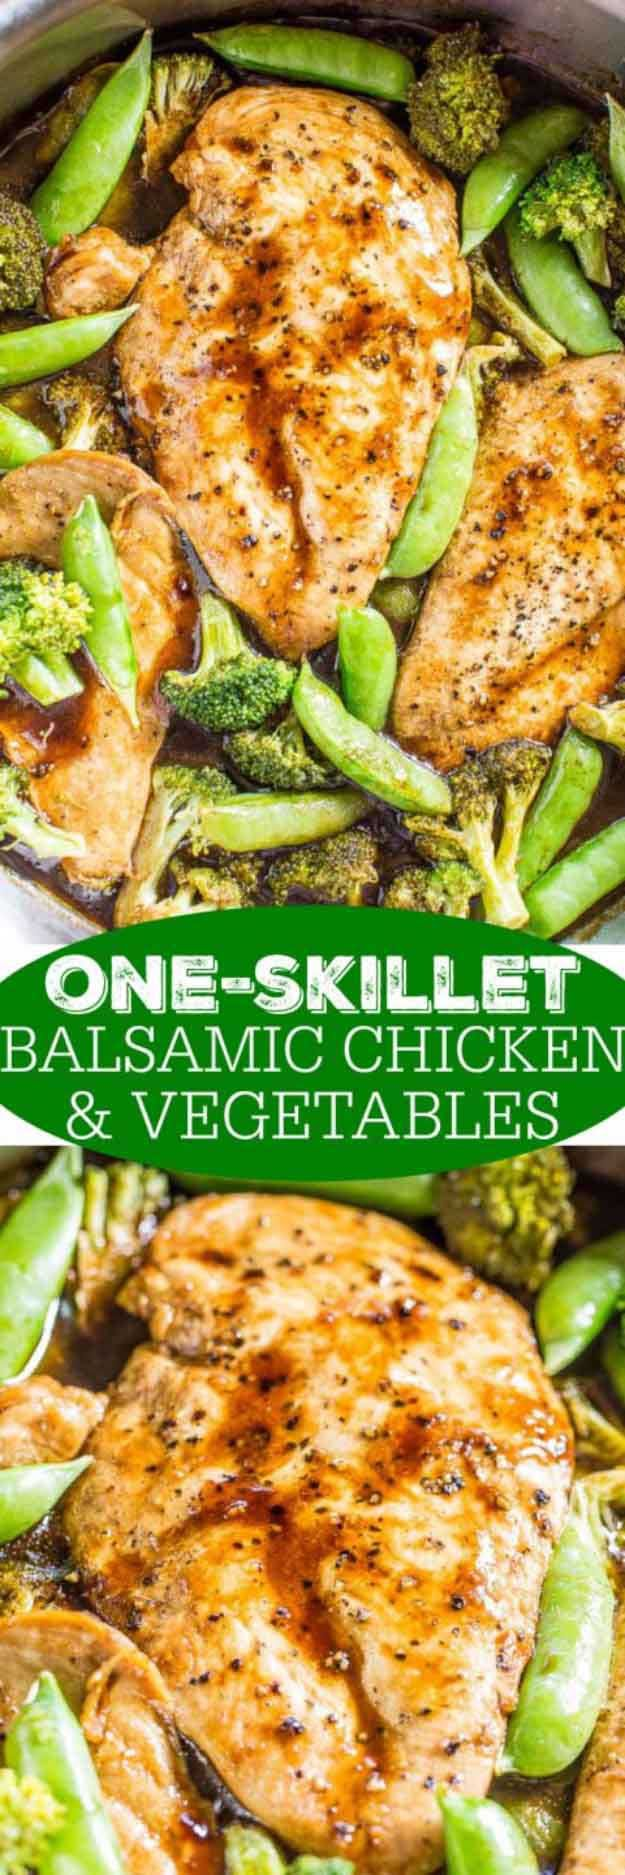 Quick and Easy Healthy Dinner Recipes - One-Skillet Balsamic Chicken and Vegetables - Awesome Recipes For Weight Loss - Great Receipes For One, For Two or For Family Gatherings - Quick Recipes for When You're On A Budget - Chicken and Zucchini Dishes Under 500 Calories - Quick Low Carb Dinners With Beef or Shrimp or Even Vegetarian - Amazing Dishes For Picky Eaters - http://thegoddess.com/easy-healthy-dinner-receipes